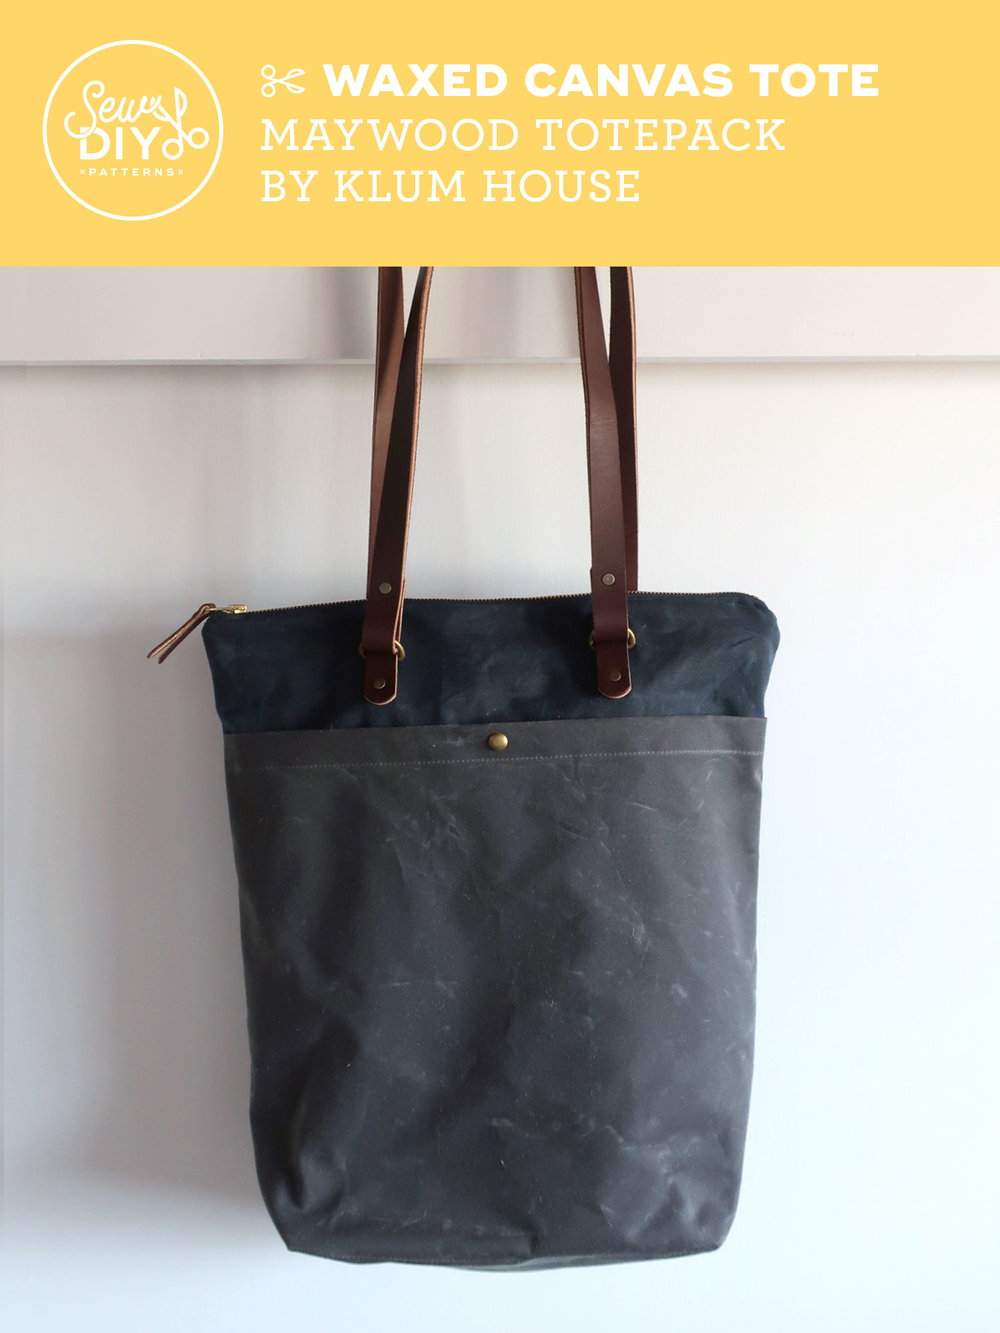 DIY Convertible Tote Backpack - Maywood Totepack by Klum House